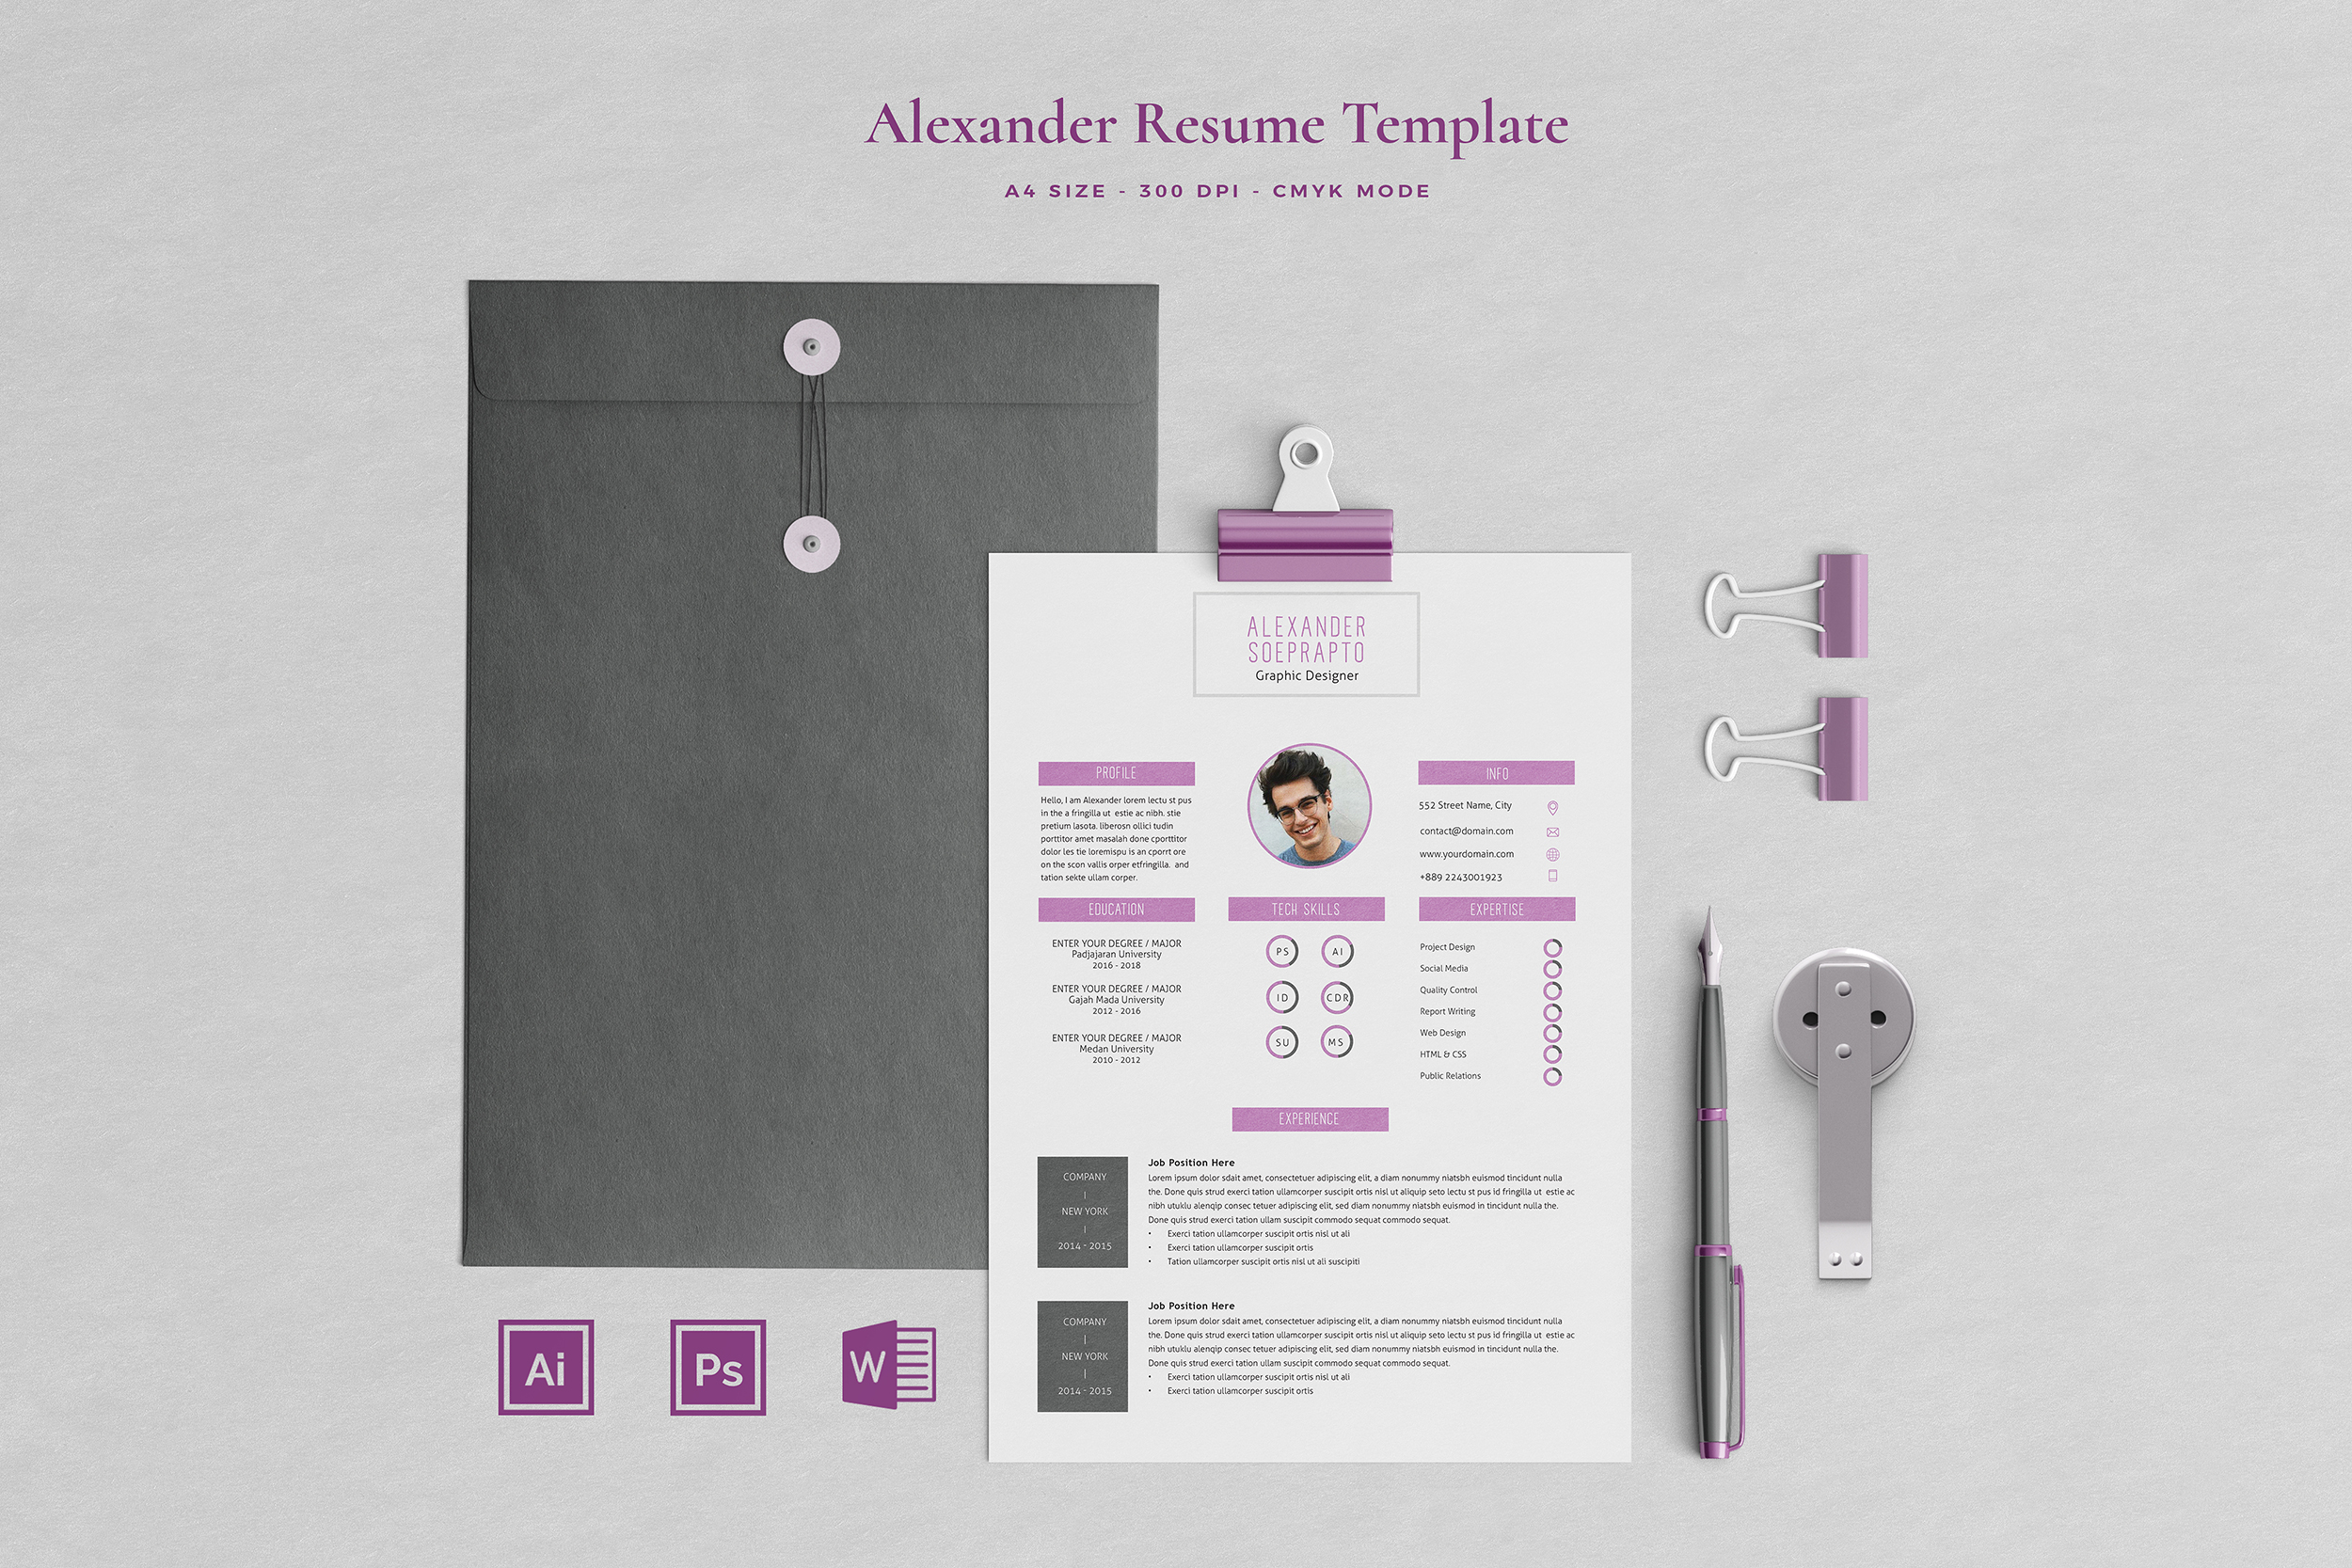 Job Seeker's Resume Bundle example image 2